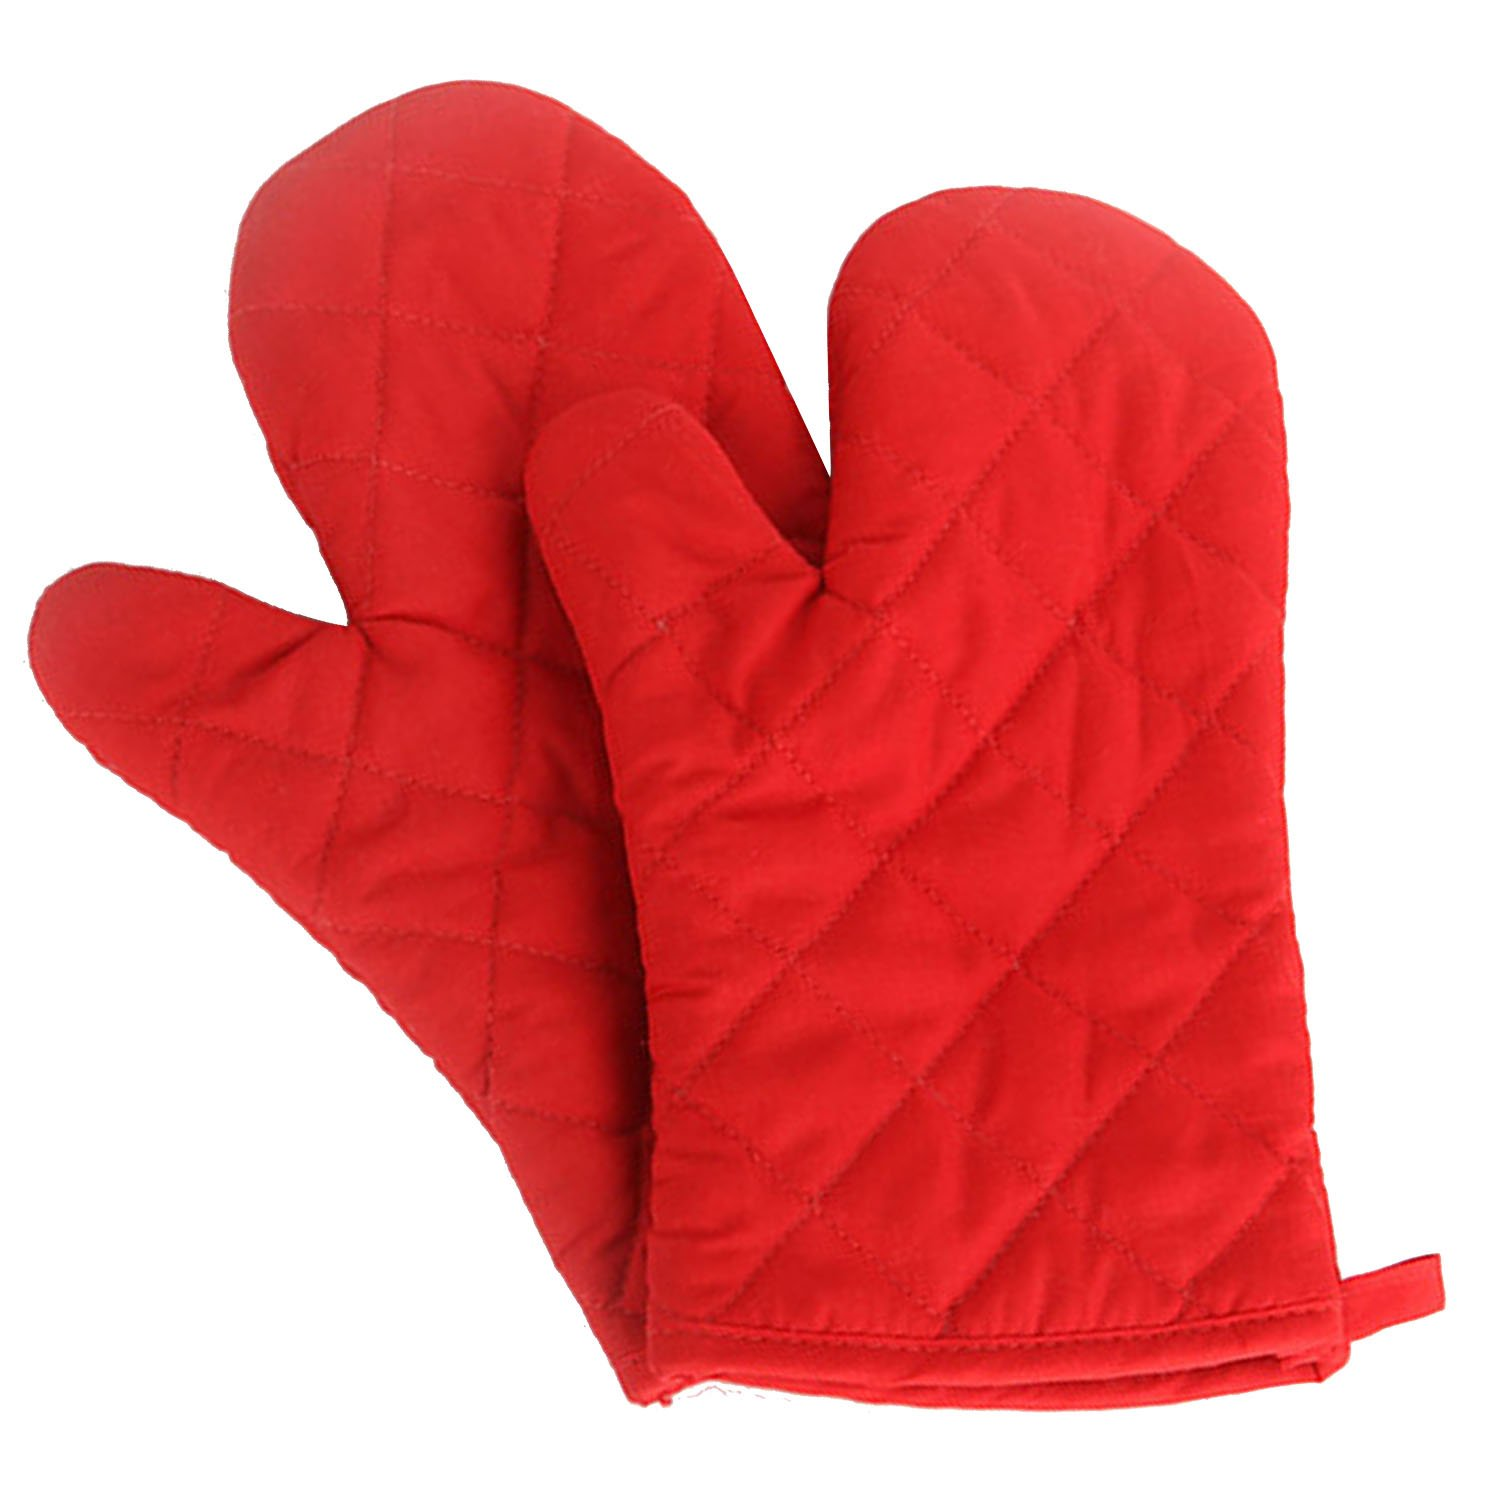 1 Pair Kitchen Gloves Baking Cooking Cotton Glove Microwave Oven Heat Resistant Gloves Mittens Red Gosear